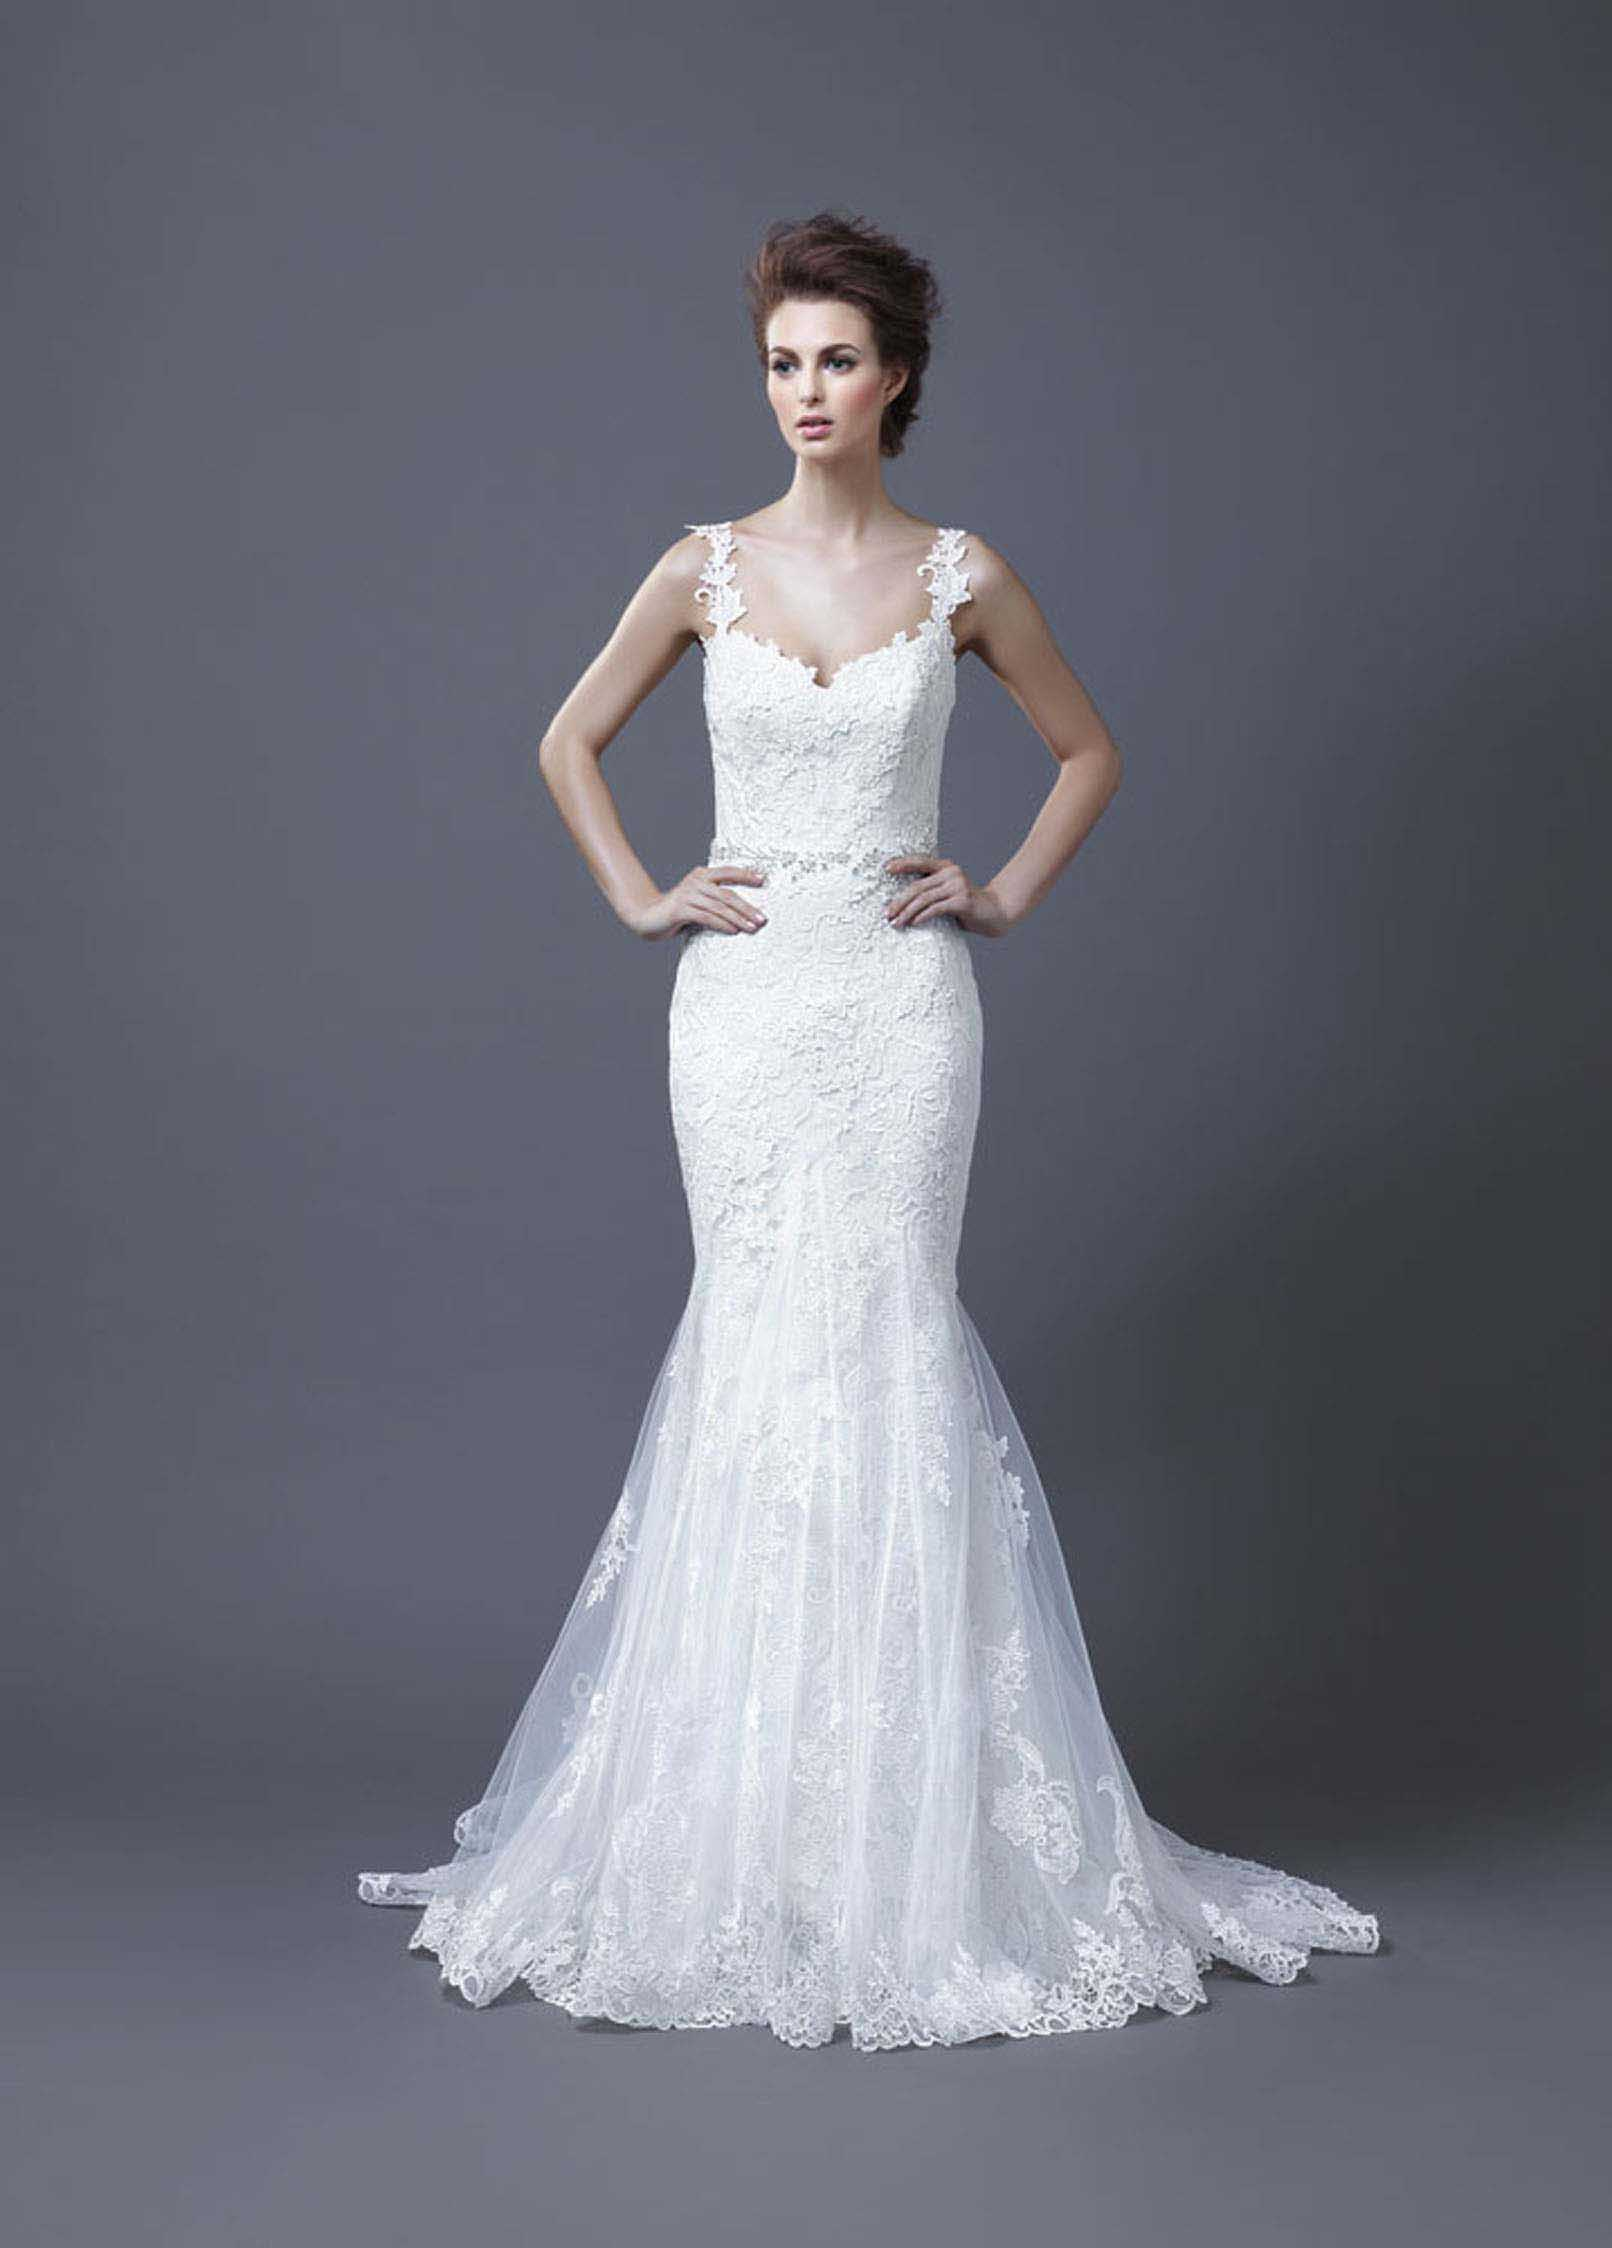 2013-wedding-dress-by-enzoani-bridal-hanako.original